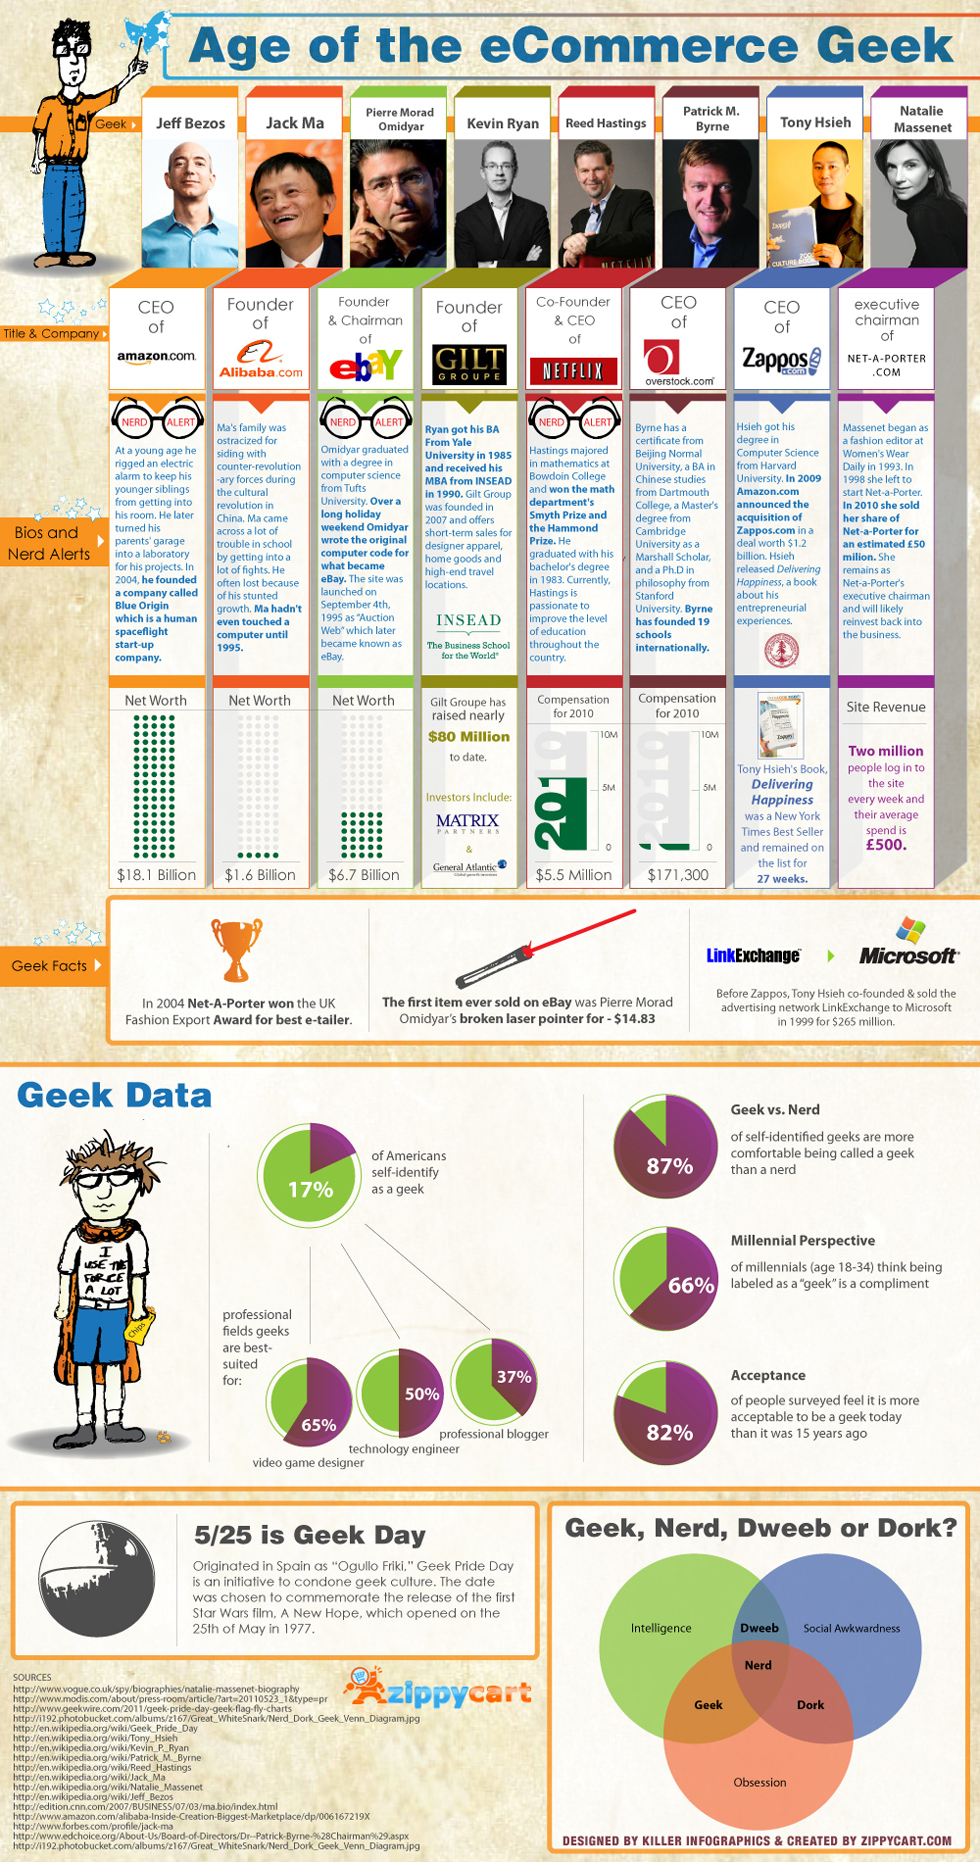 Age of the ecommerce geek